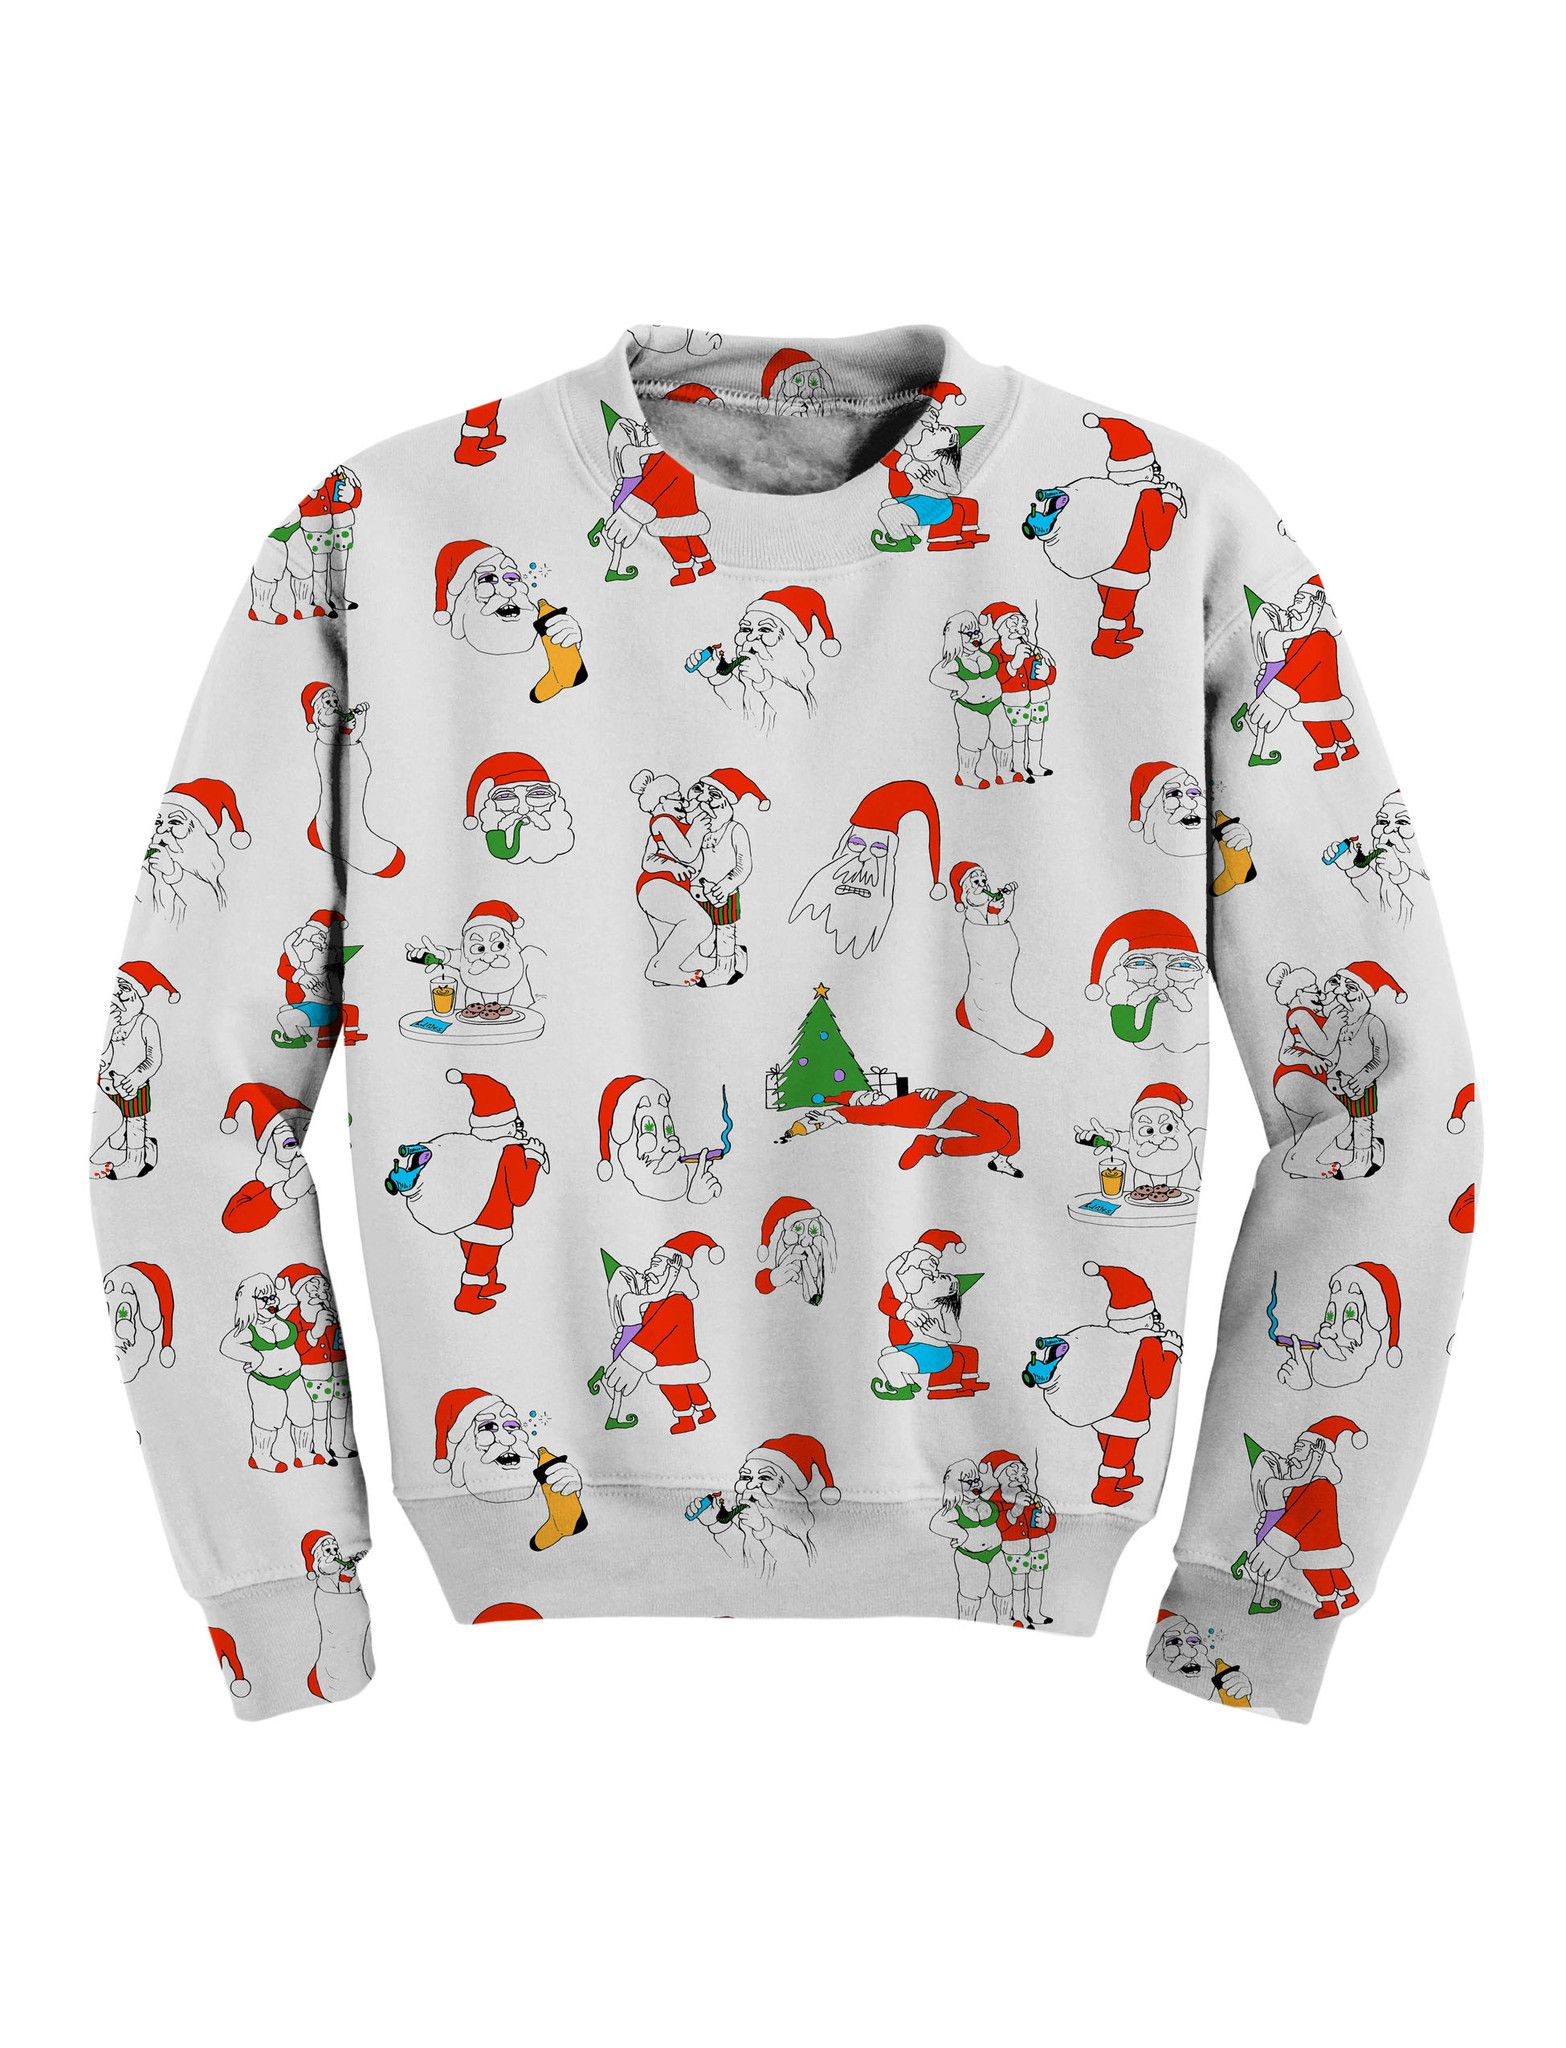 Naughty Santa Sweatshirt | Products | Pinterest | Products